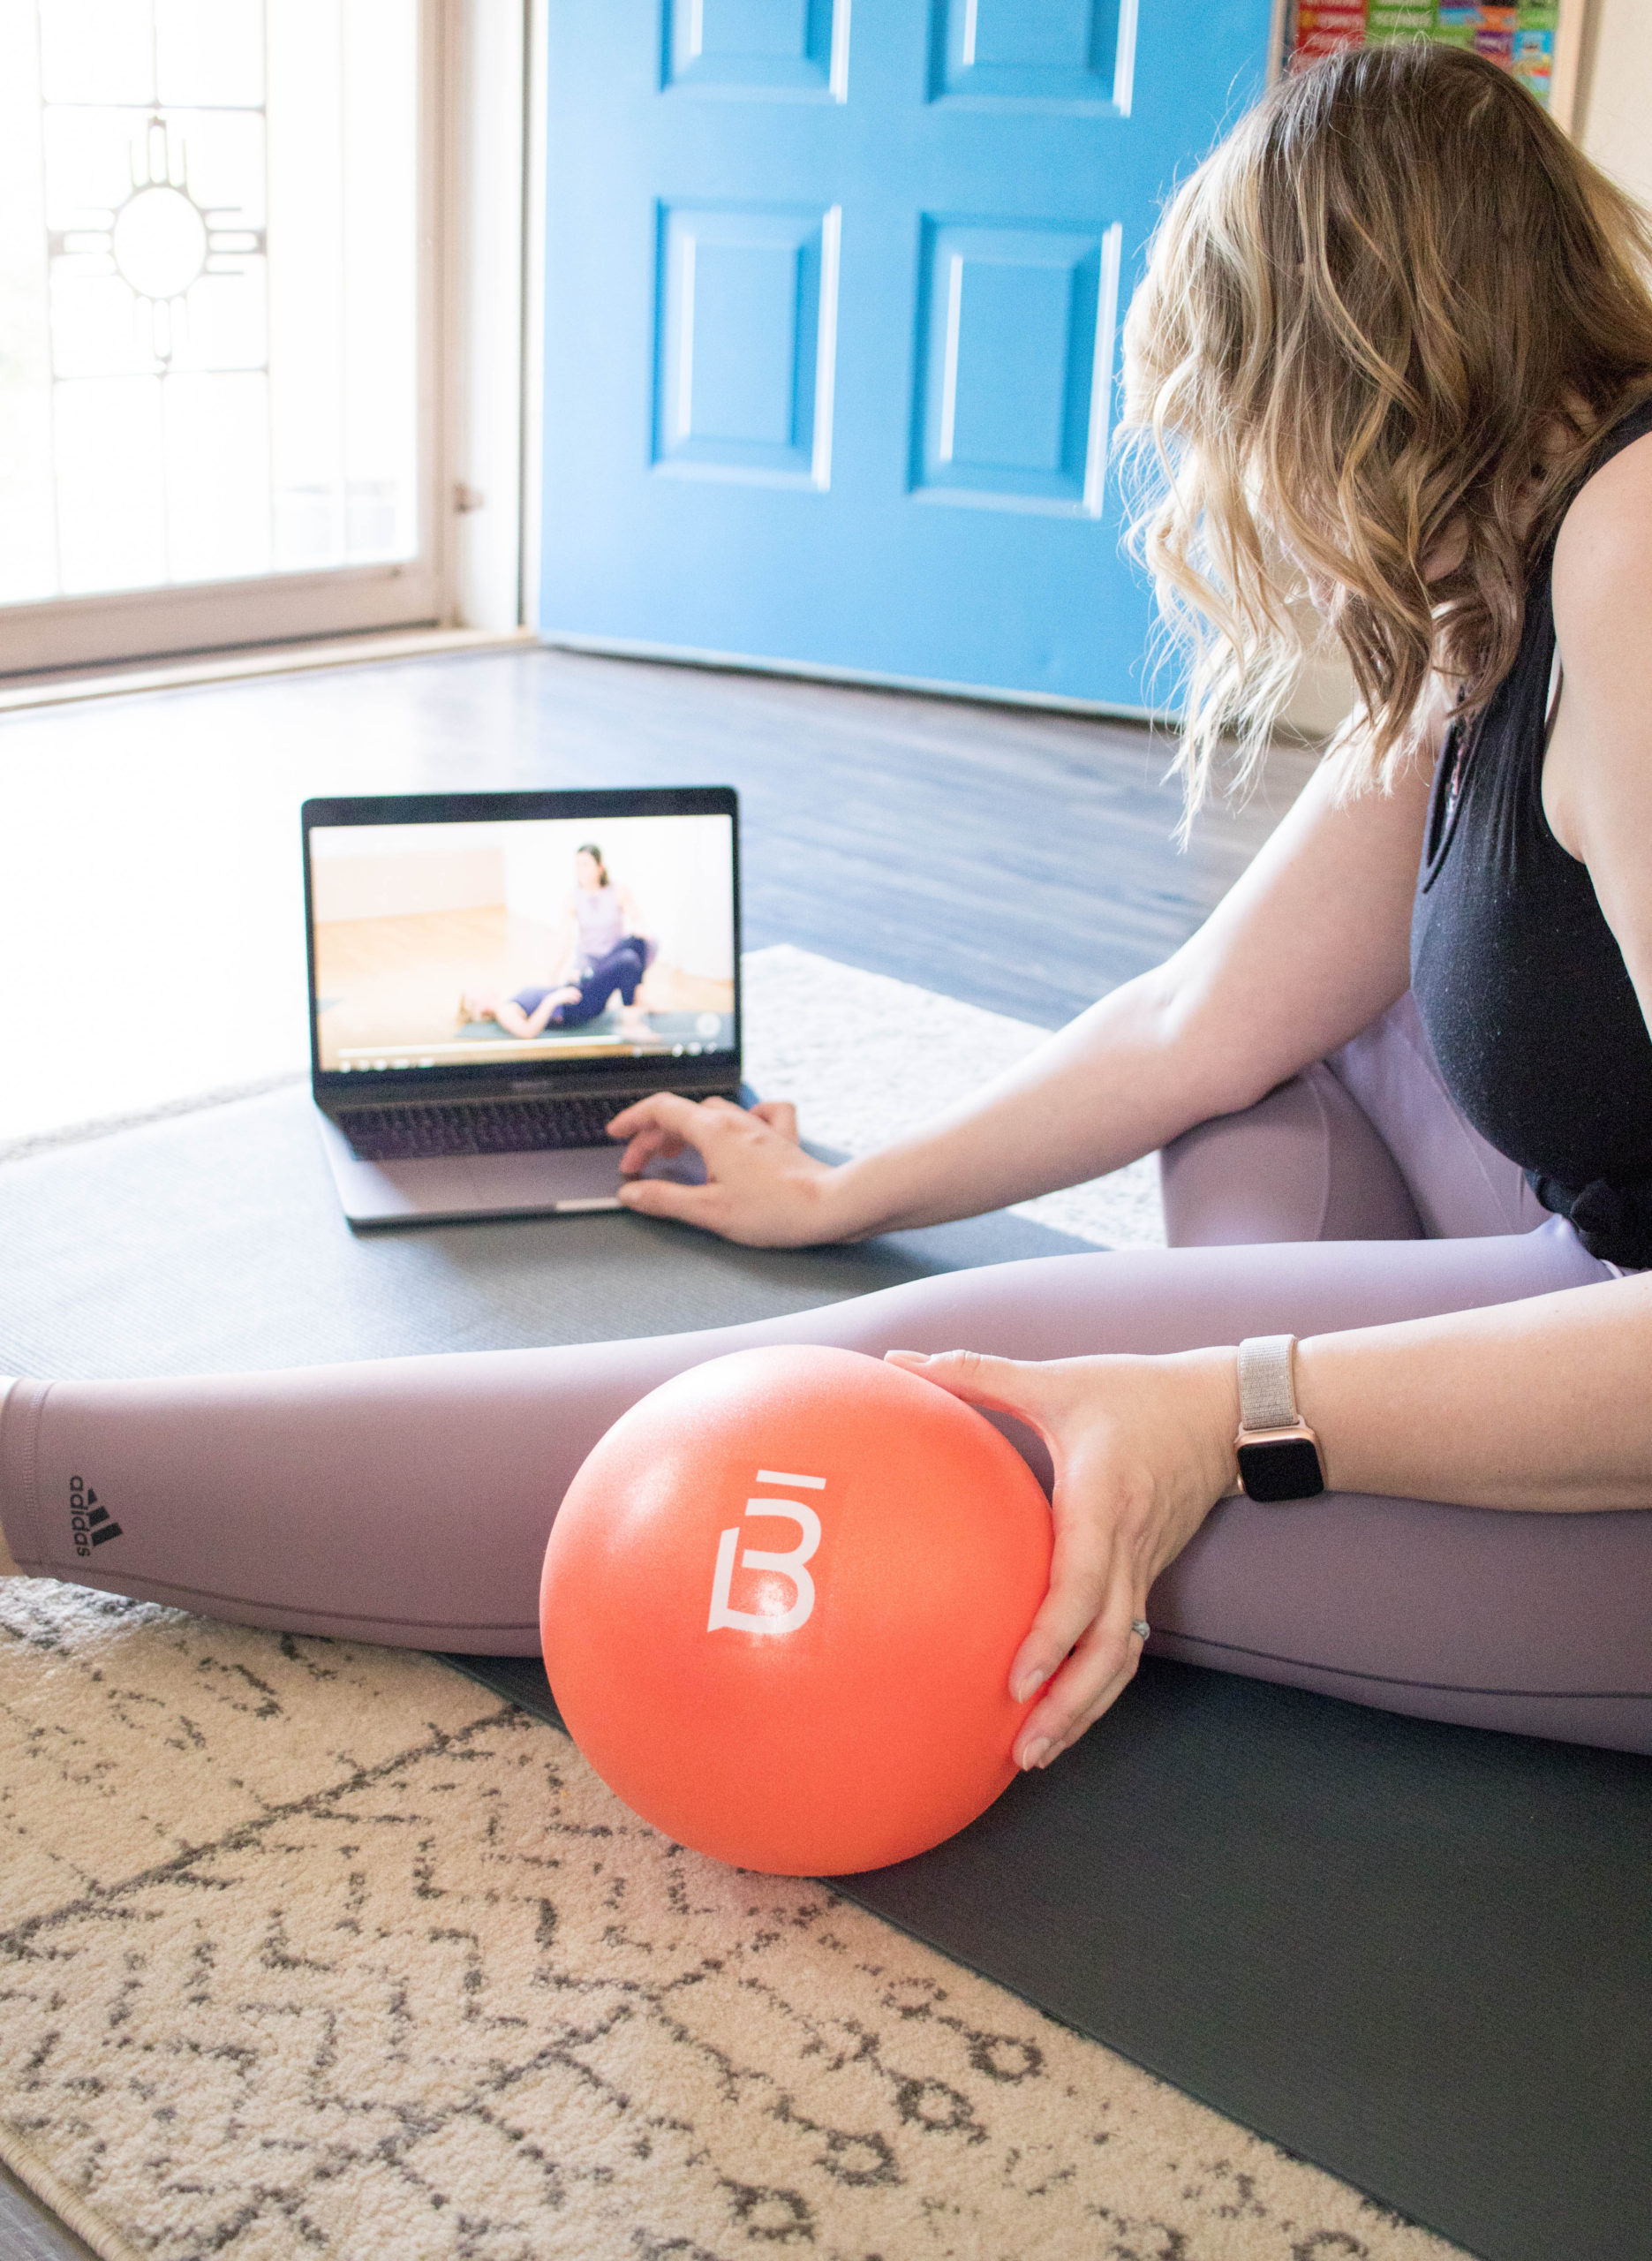 barre3 workouts at home #barre3 #exercise #Adidas